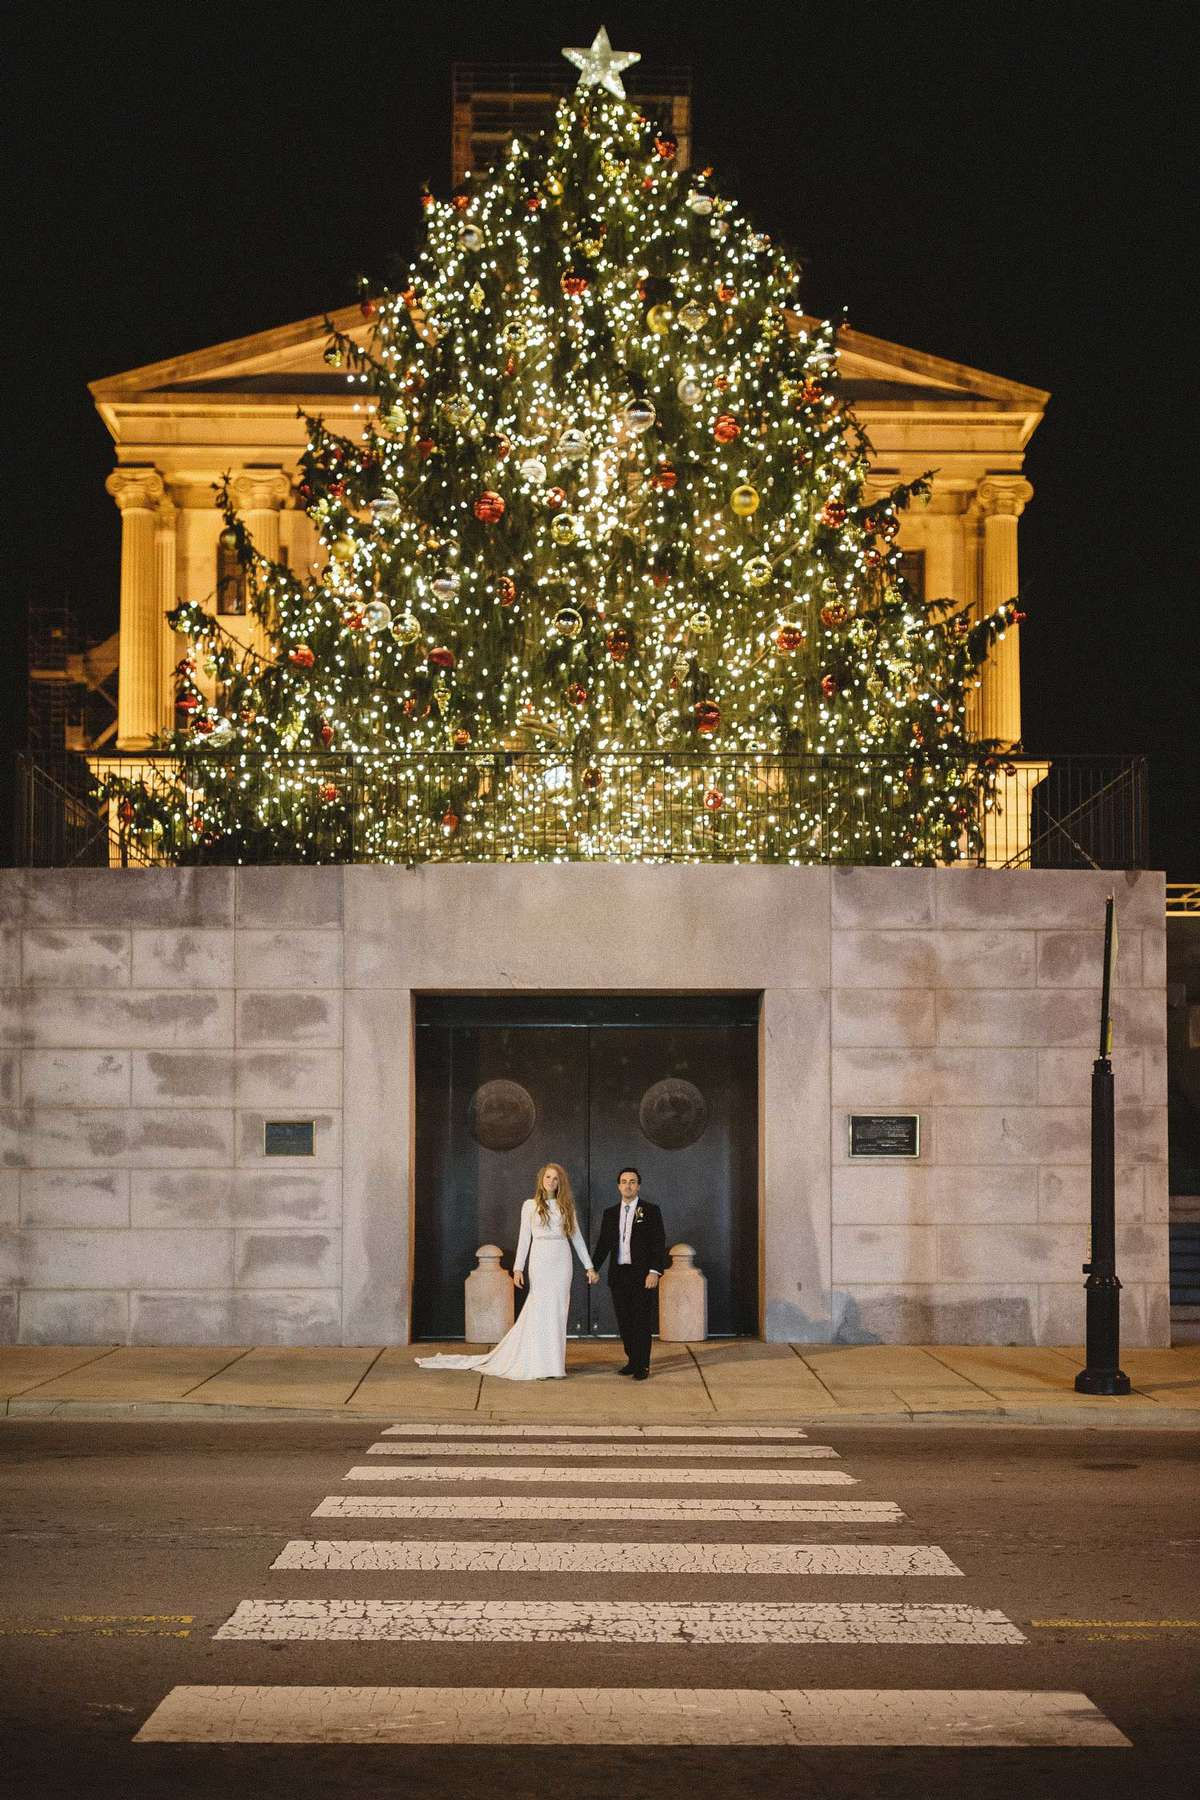 urban wedding photoshoot at christmas